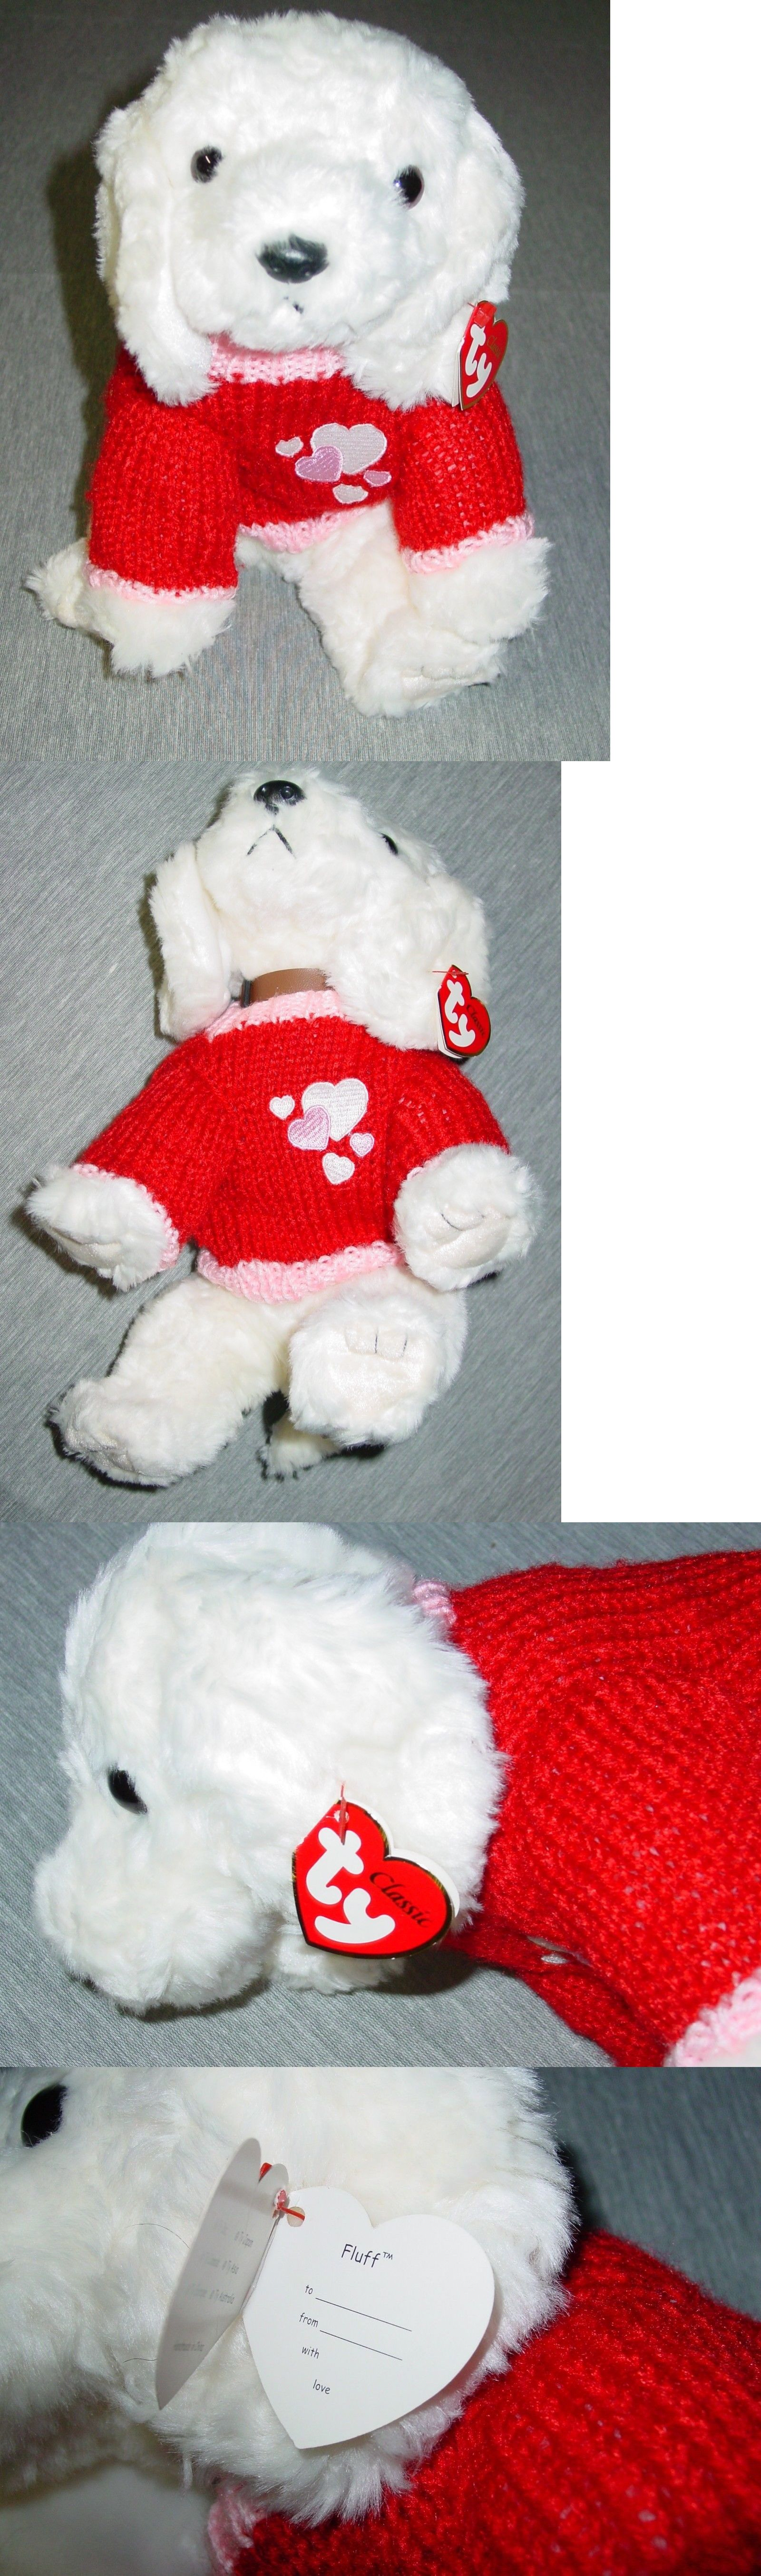 e193c5e0409 Retired 1636  Ty Classic 13 Plush Fluff The White Dog With Red Valentines  Sweater -  BUY IT NOW ONLY   39 on  eBay  retired  classic  plush  fluff   white ...